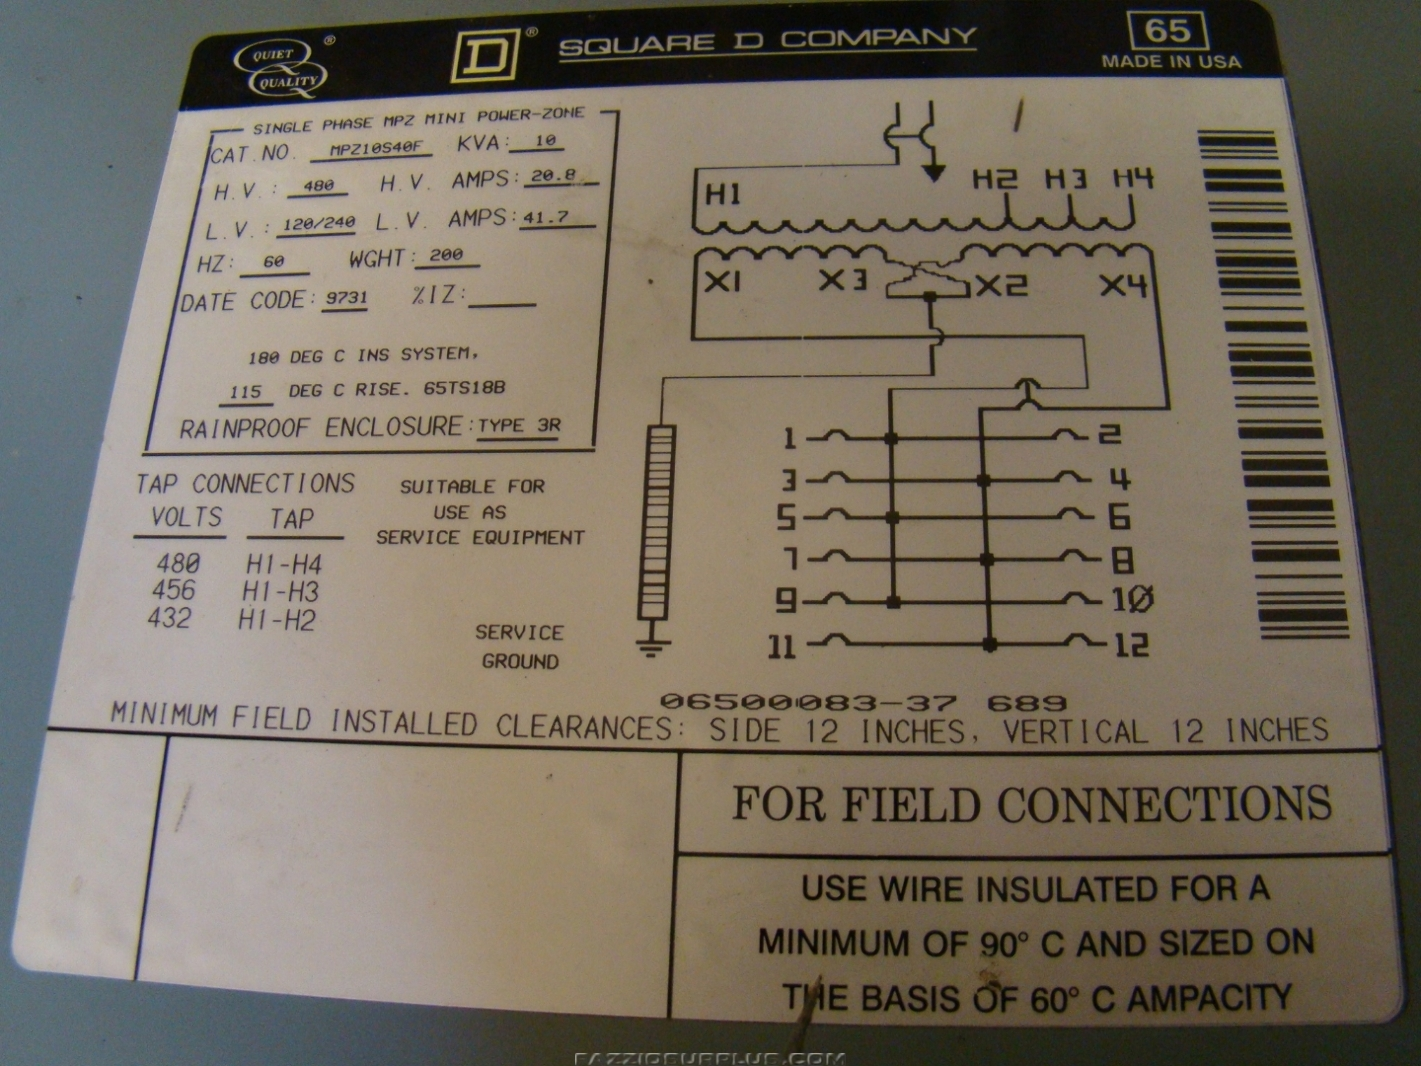 Lionel Kw Wiring Diagrams Transformer Lw Ups Diagram Connection Parts